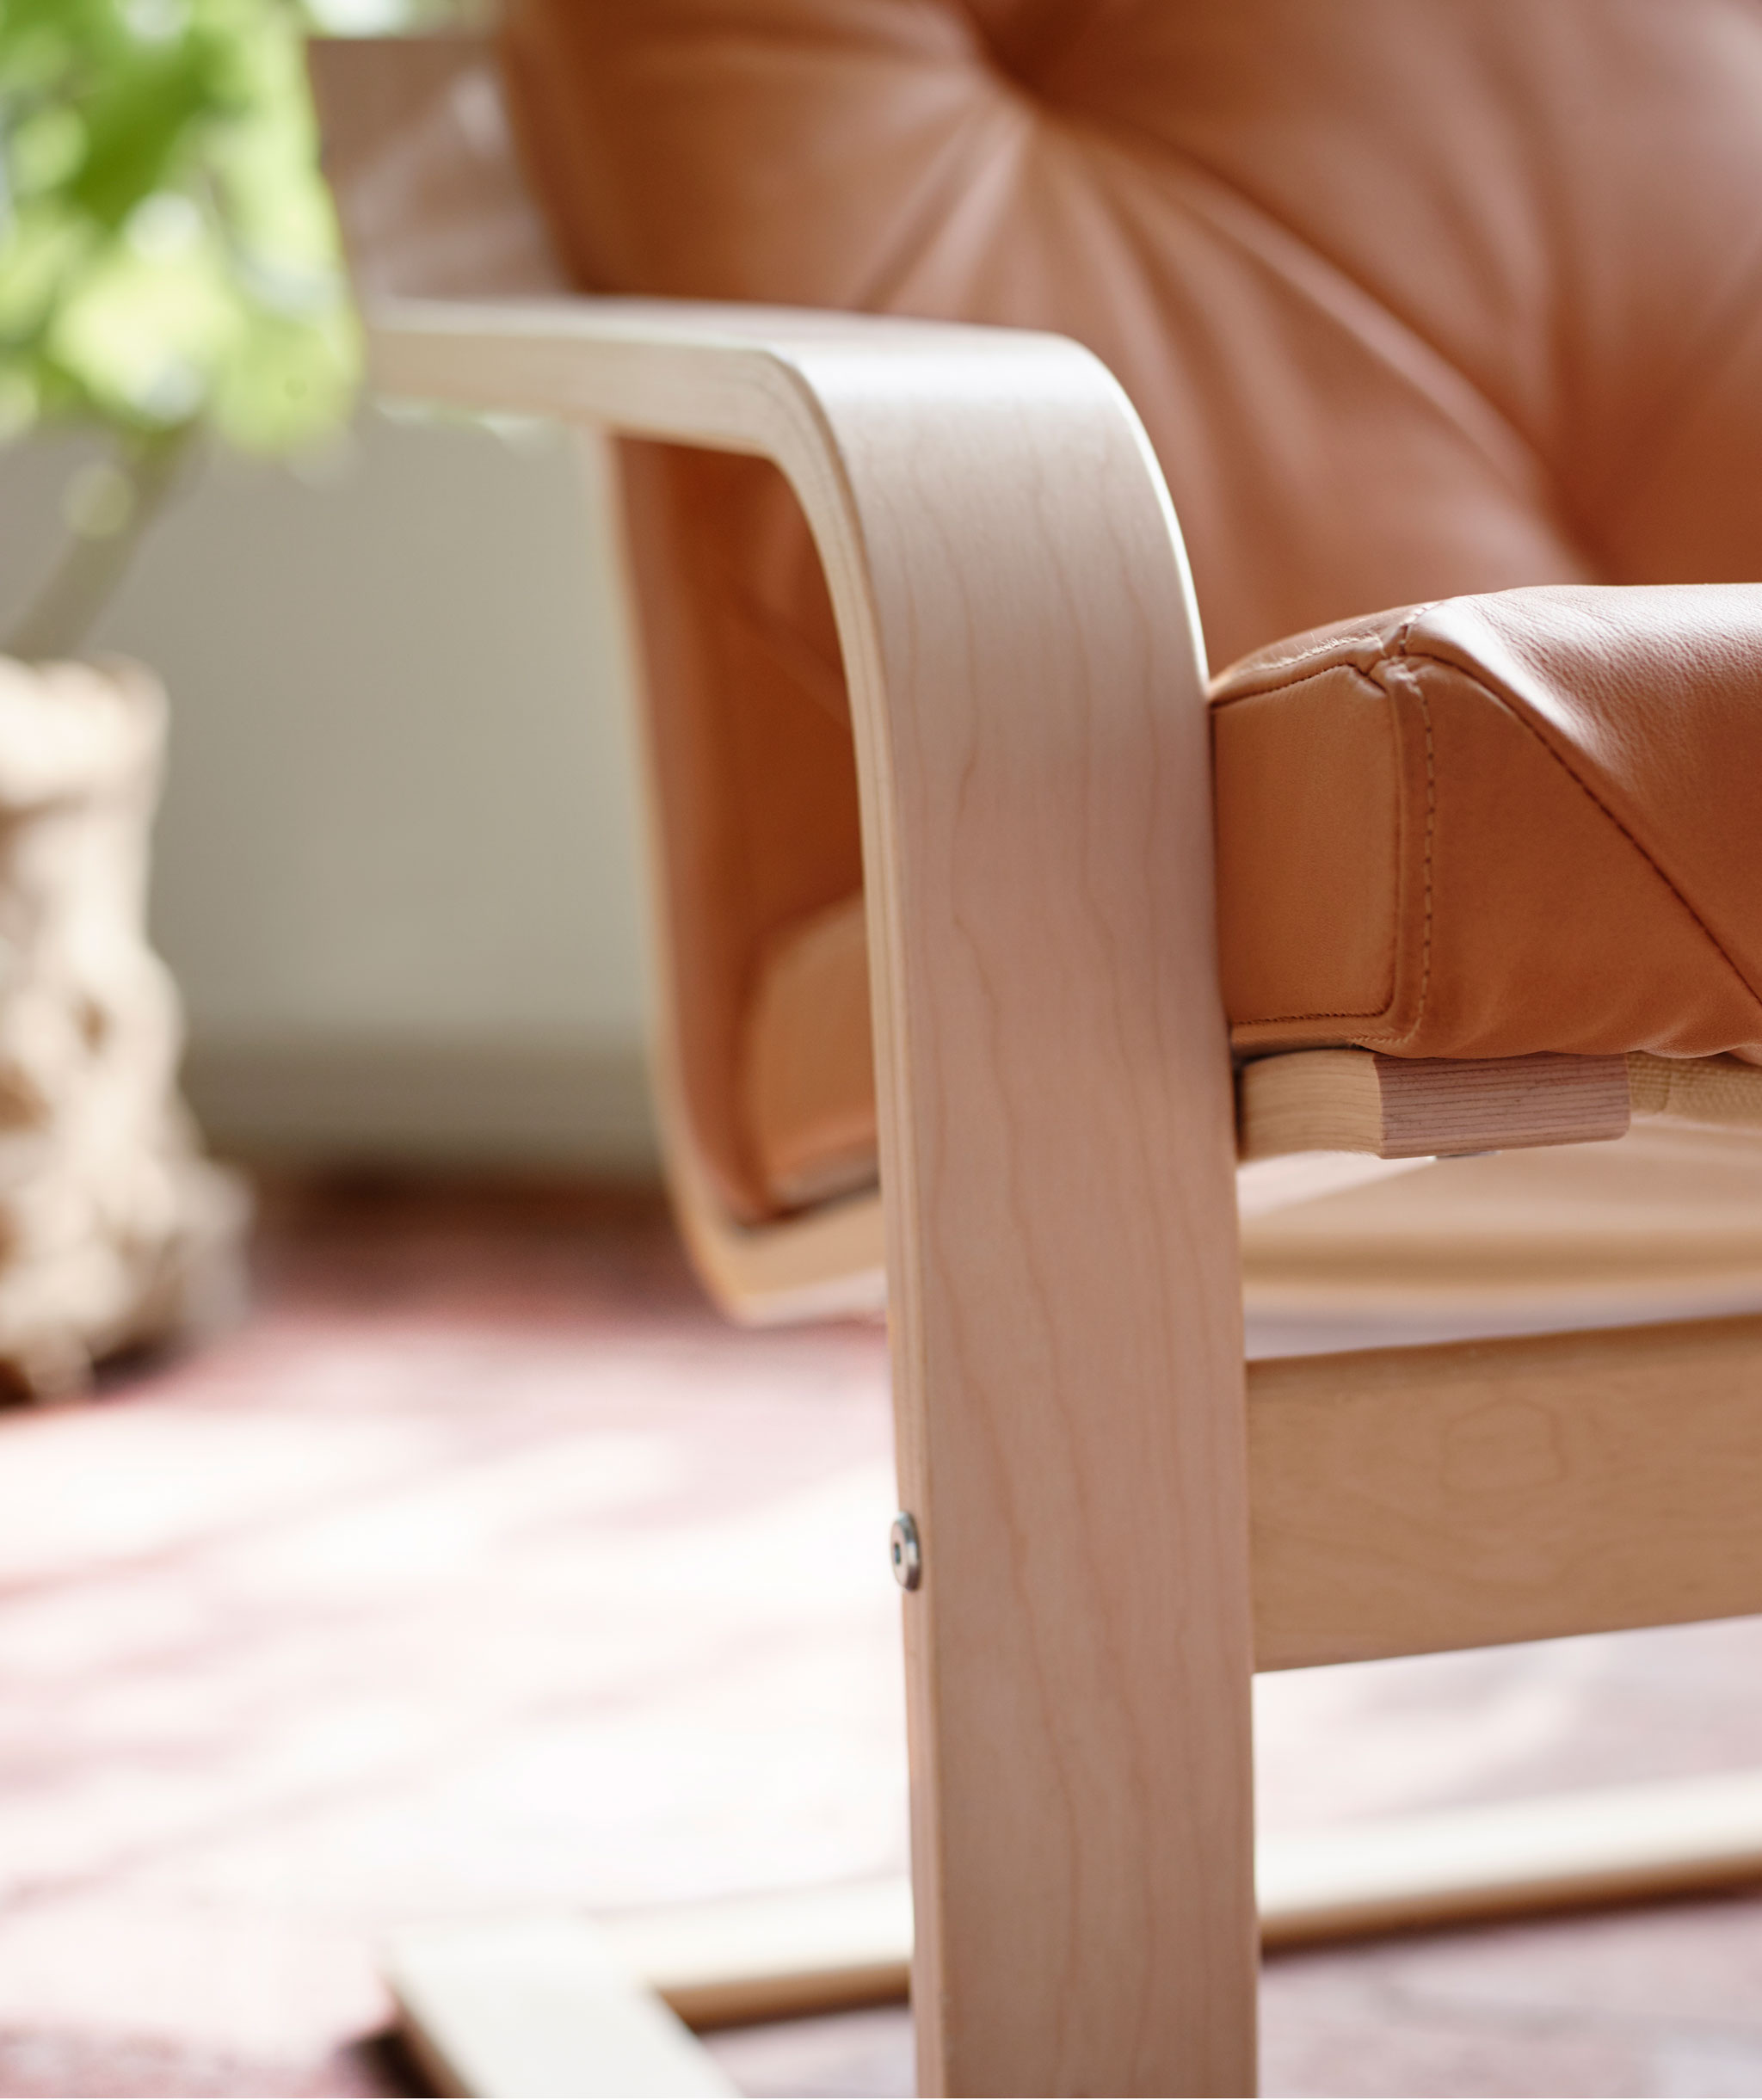 A plywood armrest and adjacent frame and seat details of an armchair, placed in a sunlit room; plant in the background.